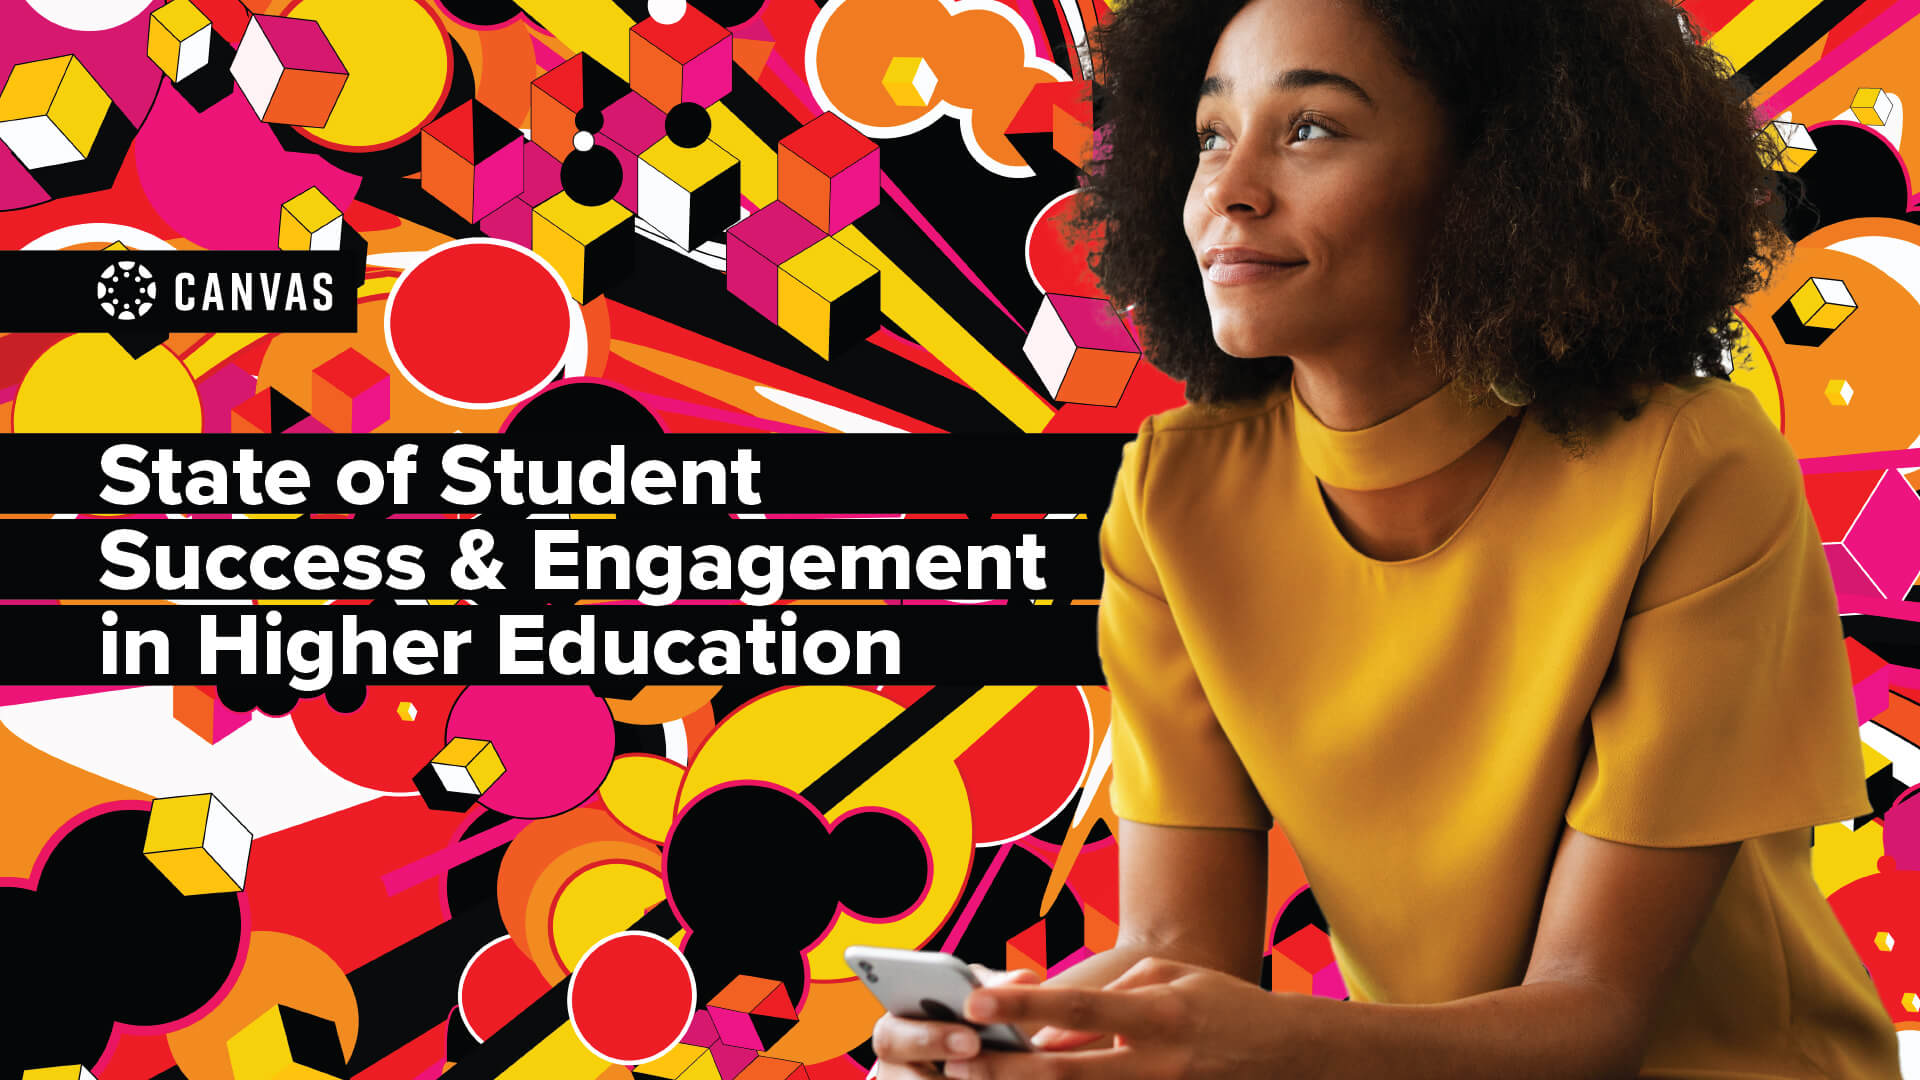 State of Student Success & Engagement in Higher Education